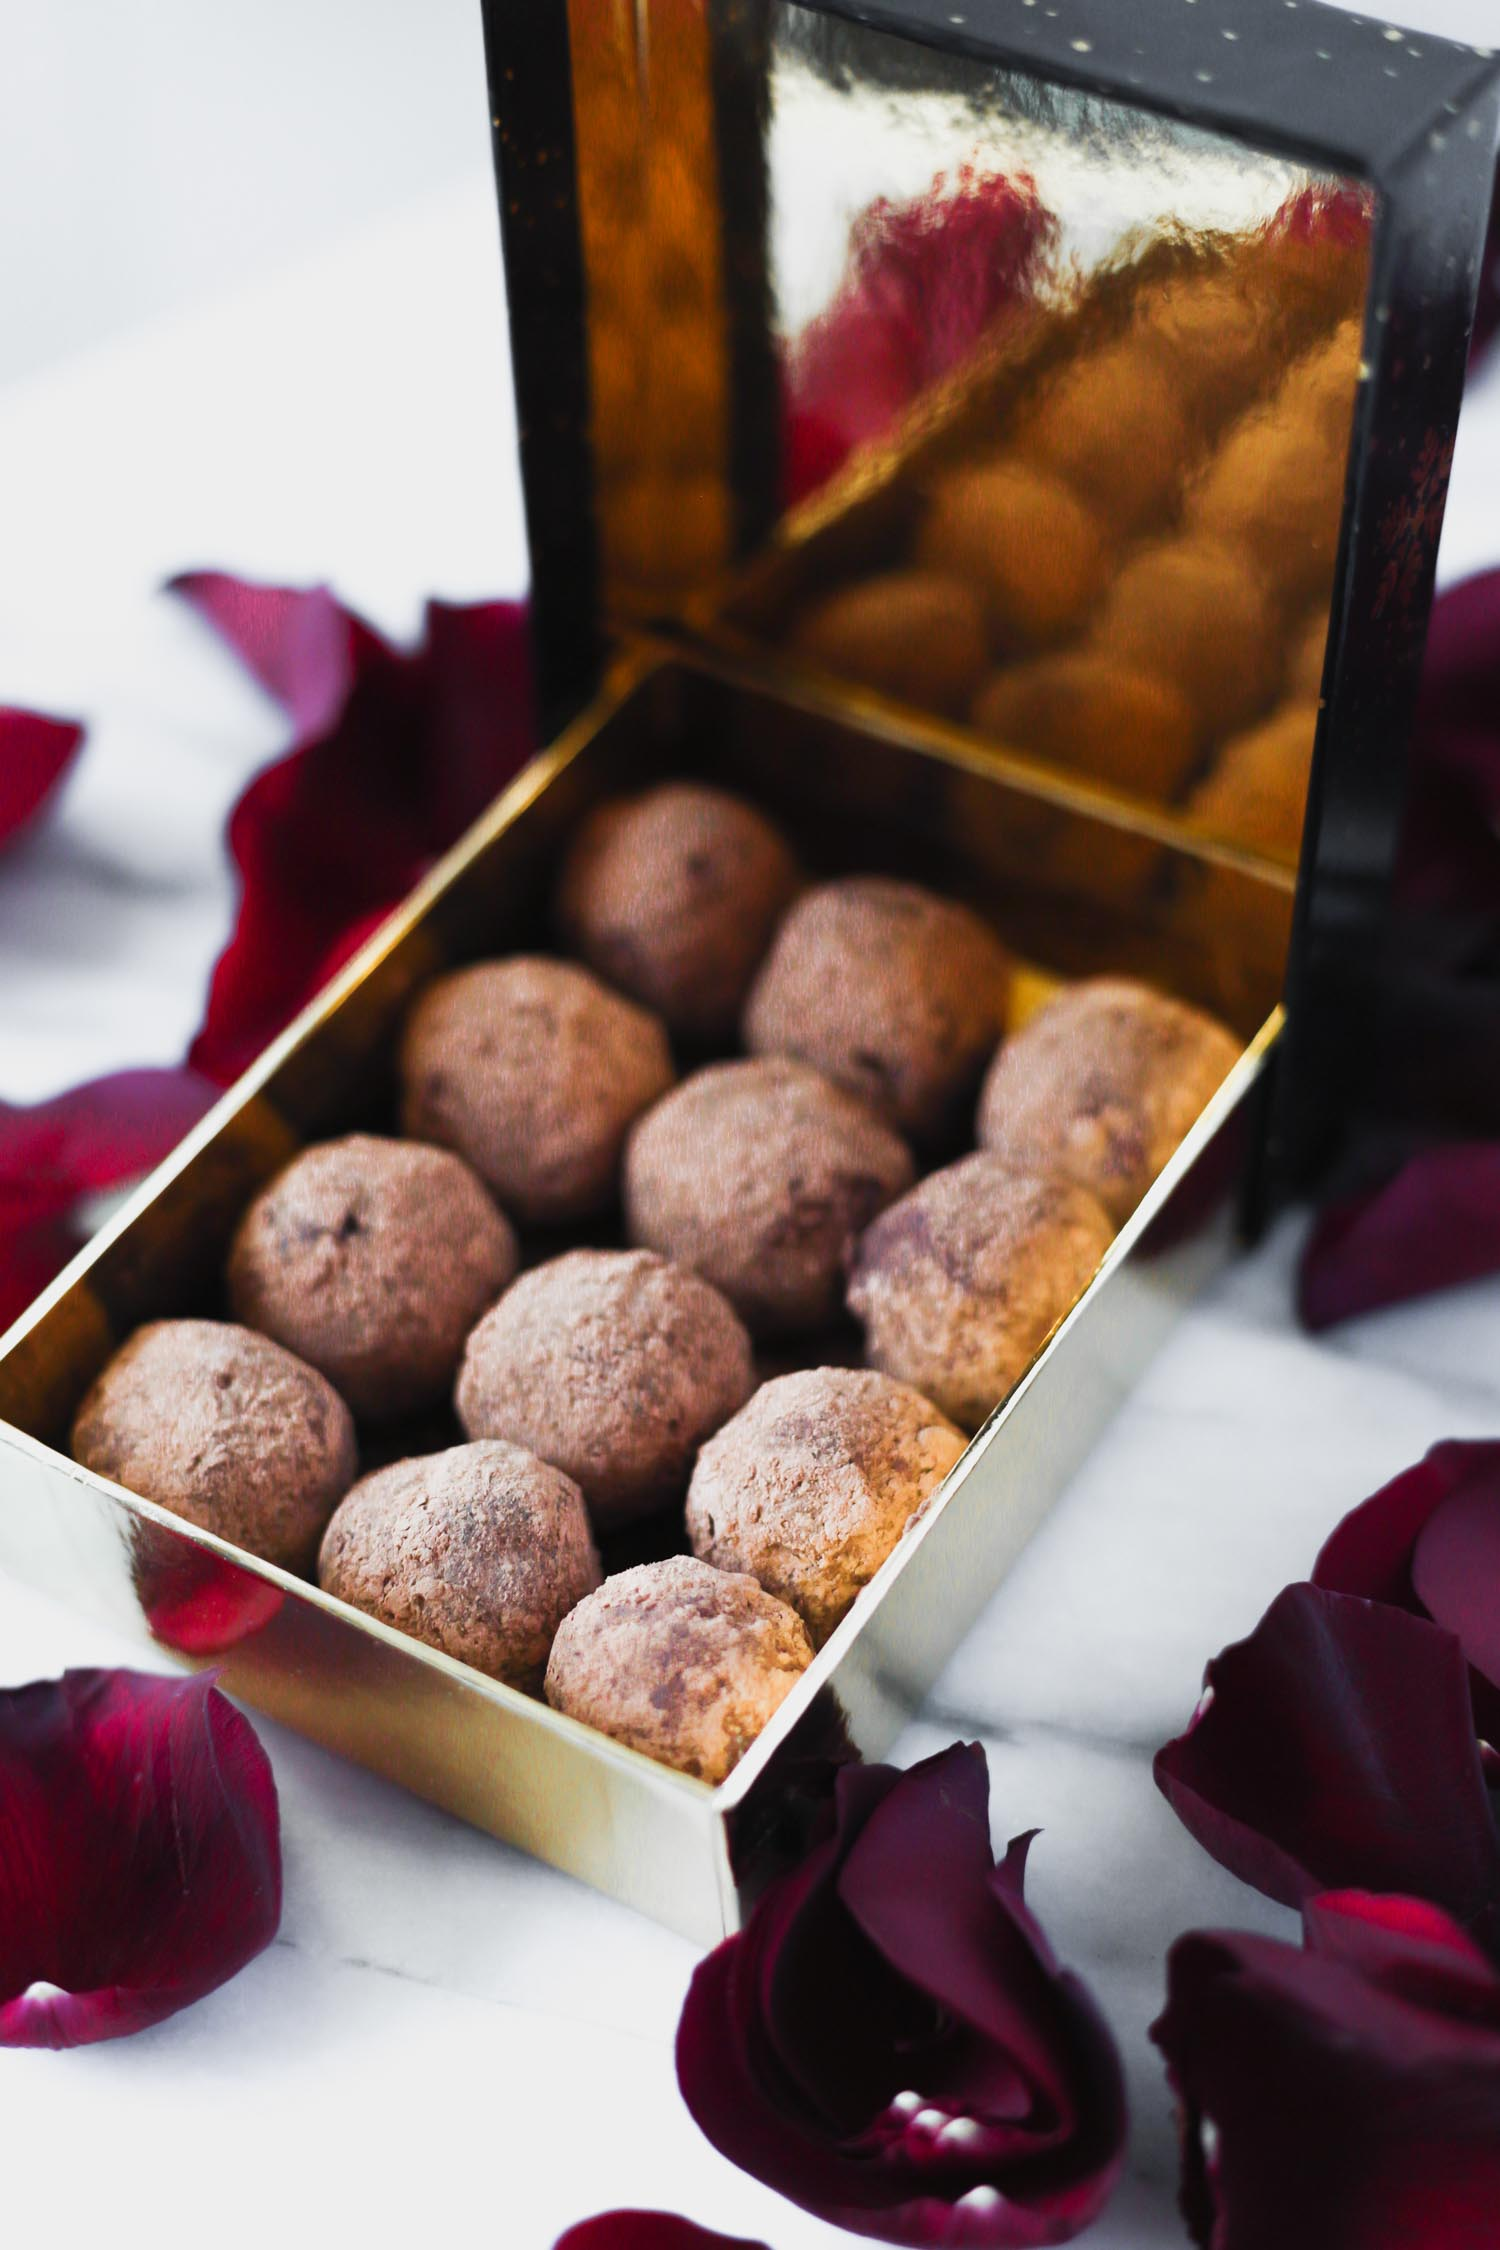 Vegan Chocolate Macadamia Truffles sweetened with Monkfruit. Recipe & Photo by Beautiful Ingredient.